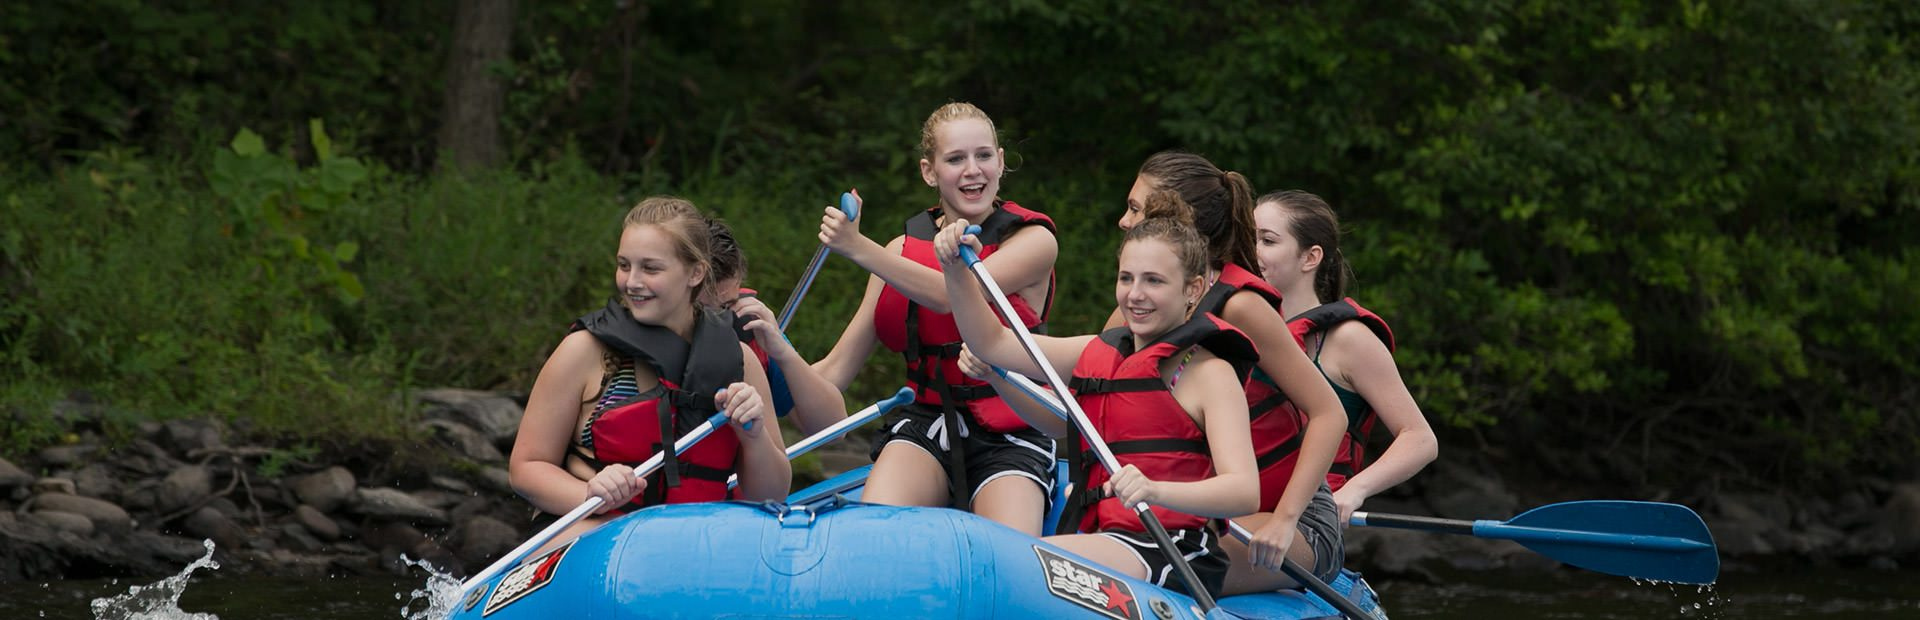 Whitewater Rafting Pocono Mountains